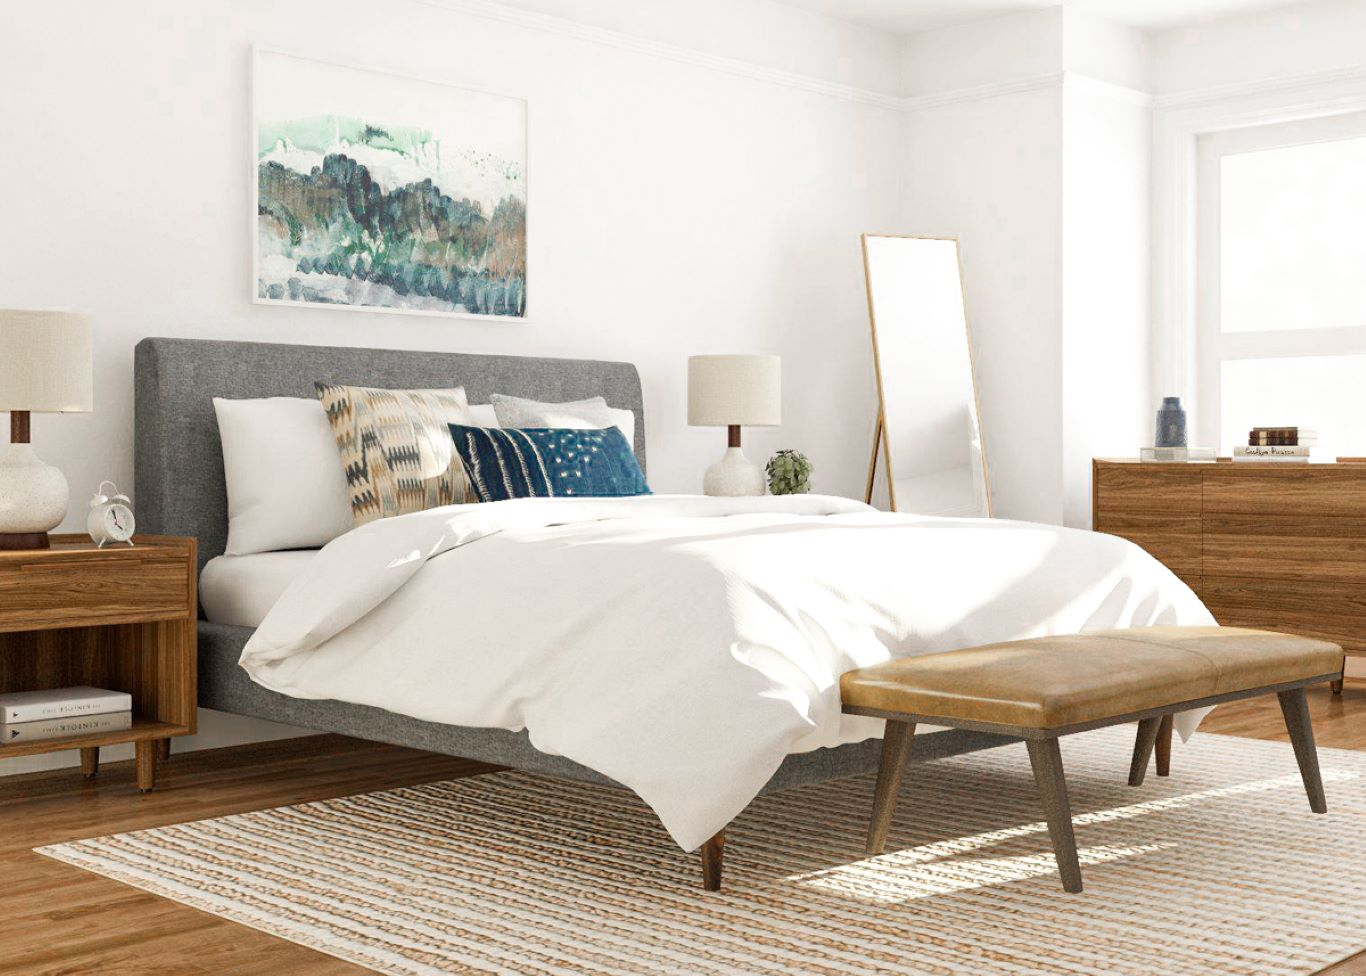 Wooden bedroom furniture with tapered legs on top of carpet decorated minimally